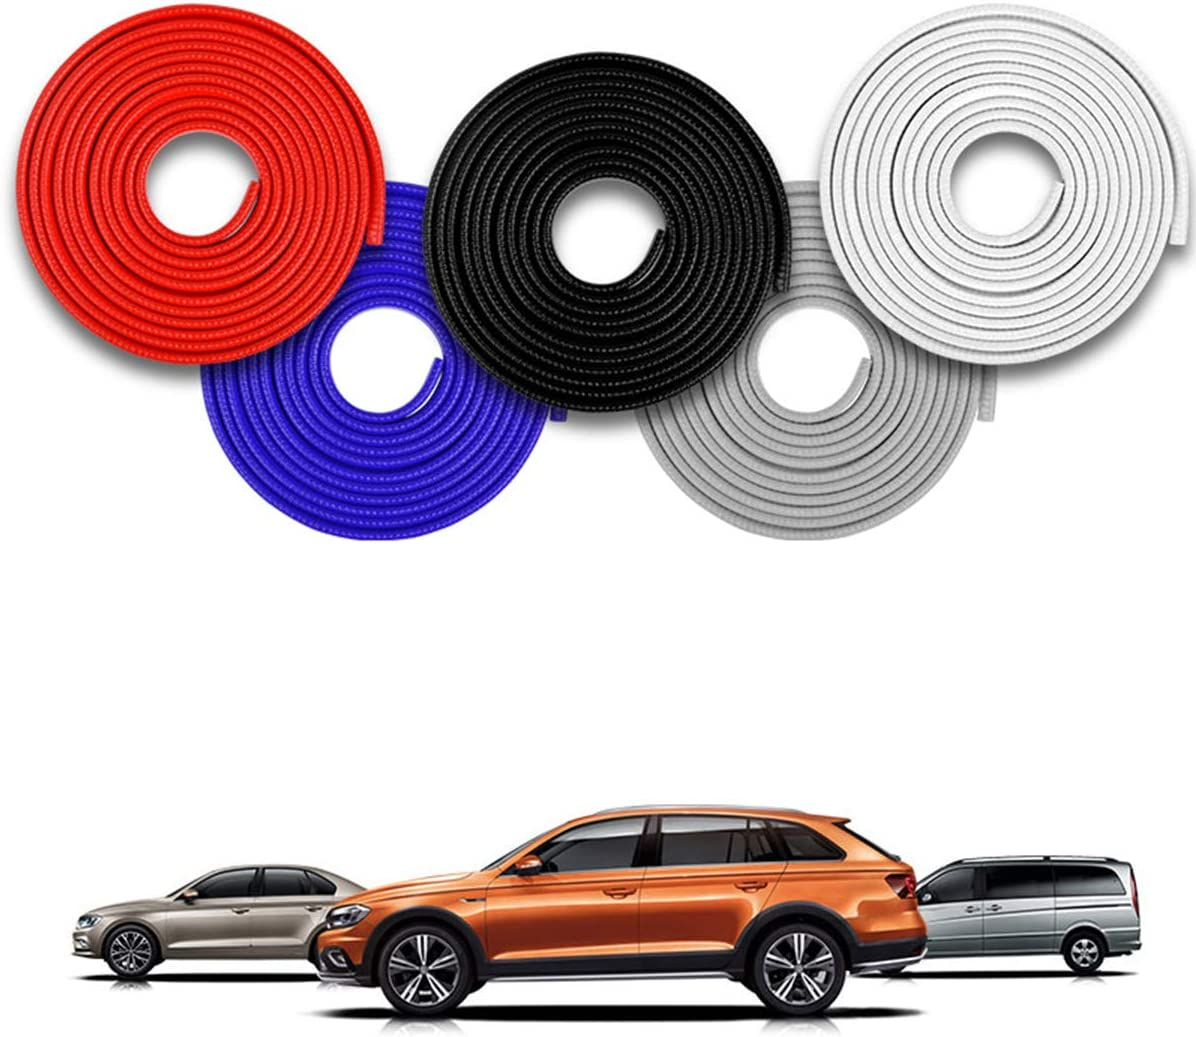 Dibiao Noise Reduction Anti-Scratch Seal Strip fit for Most Car,16.4ft U Shape Edge Trim Car Door Edge Guard Protector,Seal Strips Car